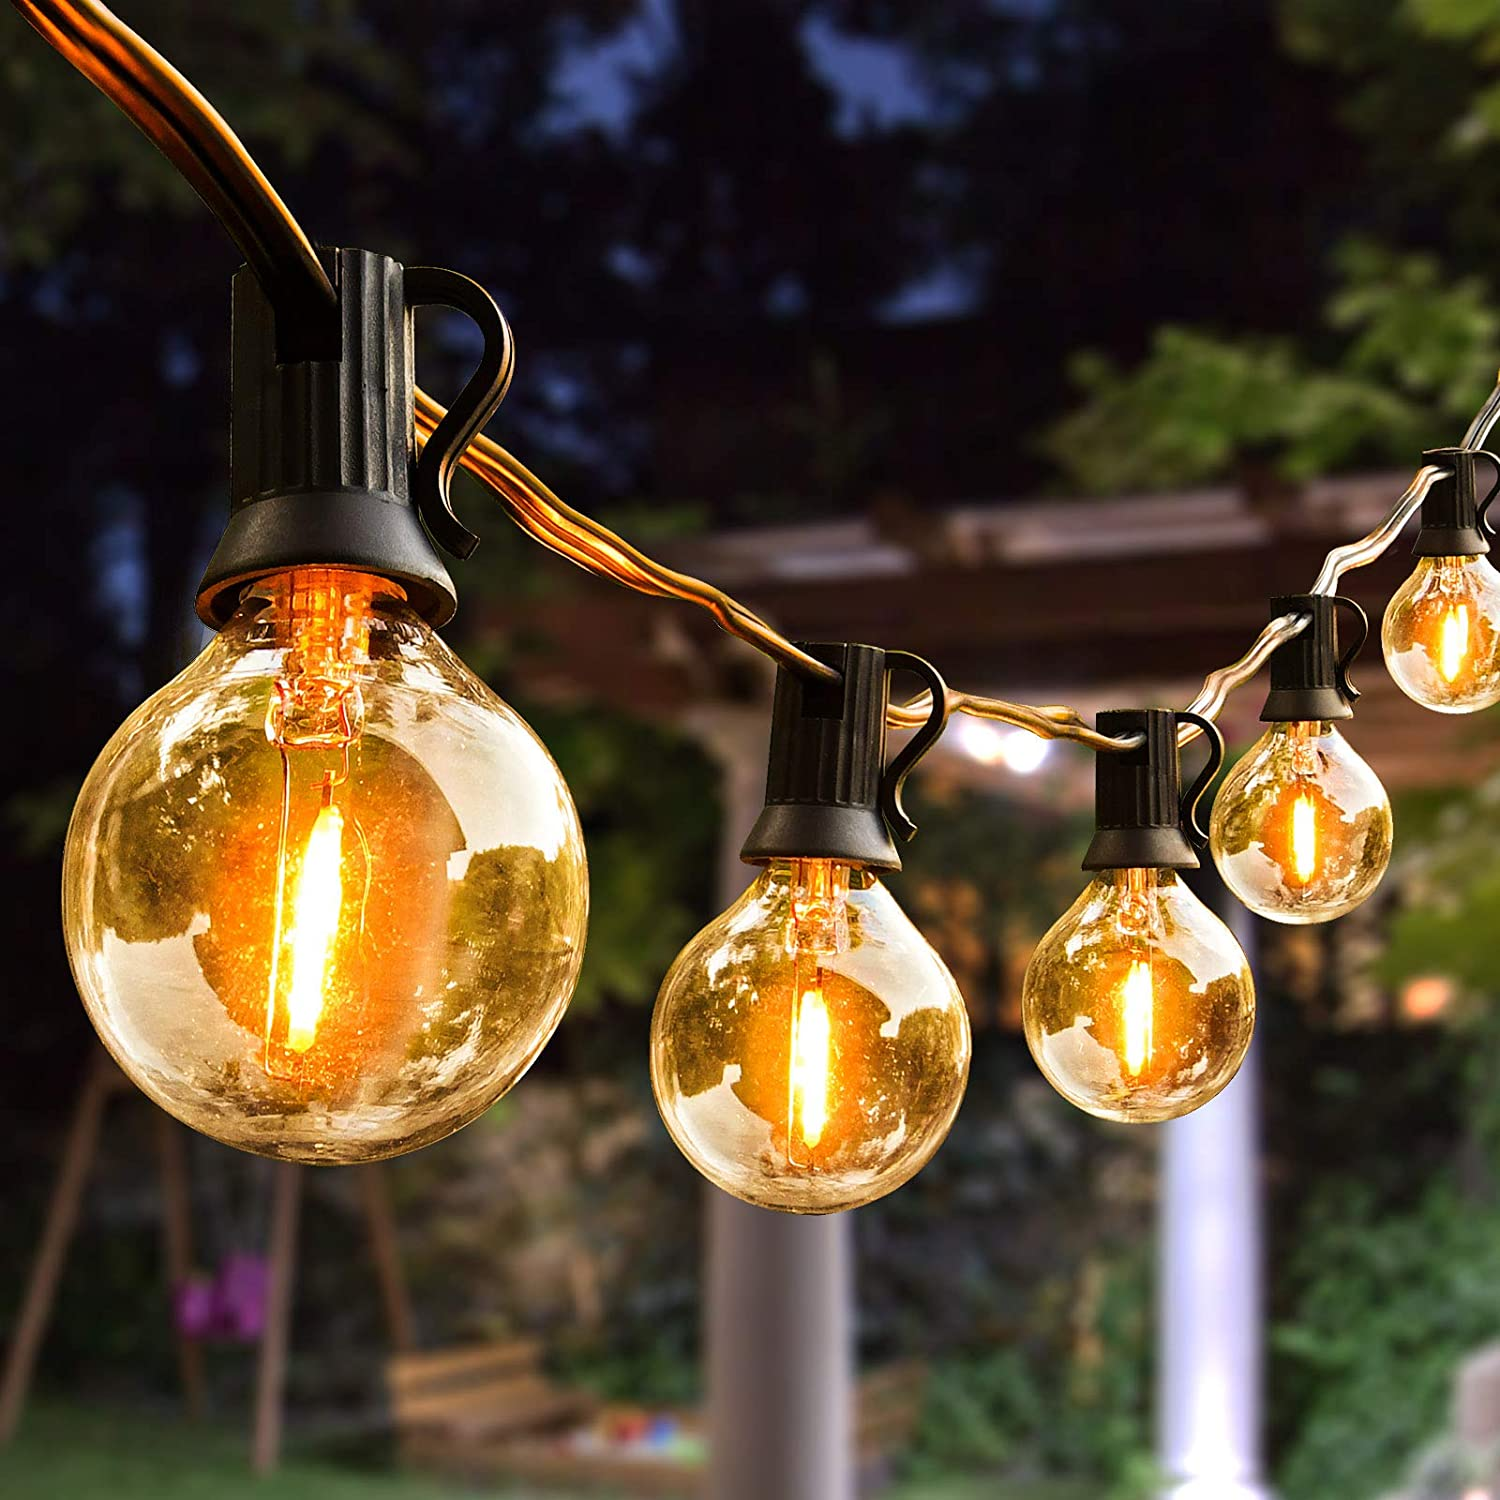 Outdoor String Lights 100ft With 64 Dimmable G40 Led Clear Bulbs Ul Approval Waterproof Globe String Lights 1w 2700k Outdoor Lighting For Backyard Porch Cafe Party Wedding Garden 100ft Home Kitchen